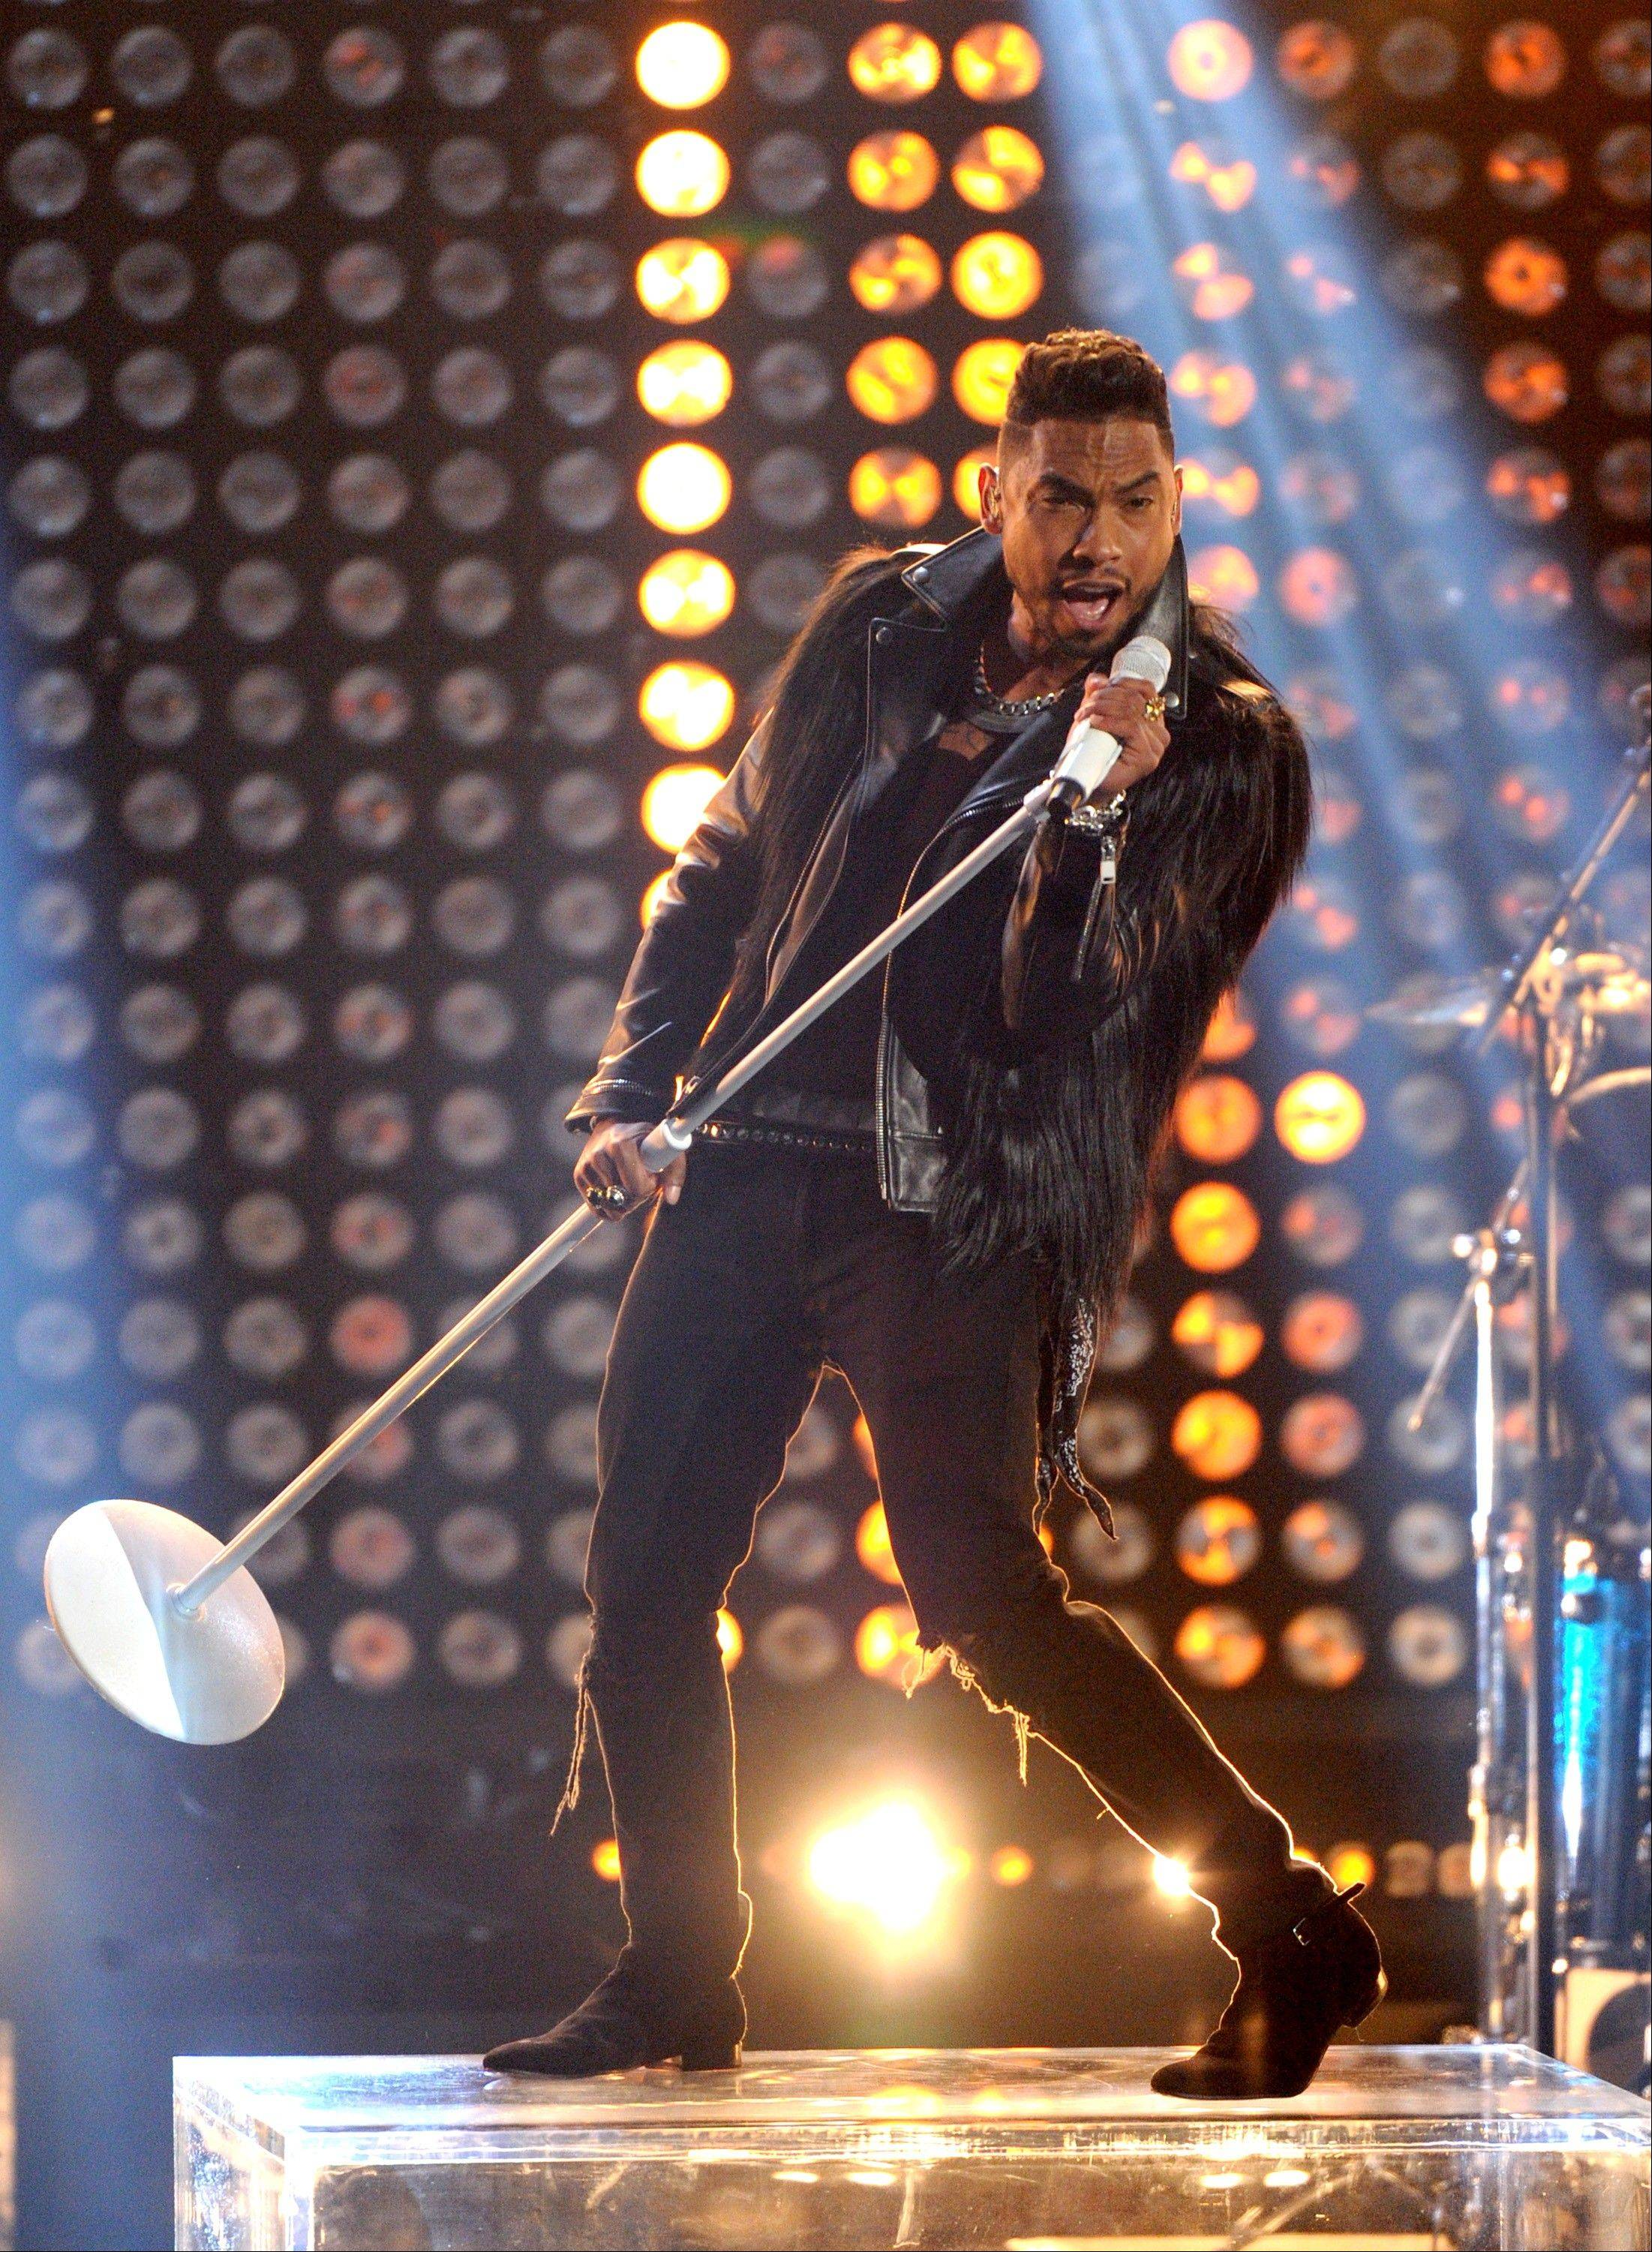 Miguel performs at the BET Awards at the Nokia Theatre in Los Angeles on Sunday.